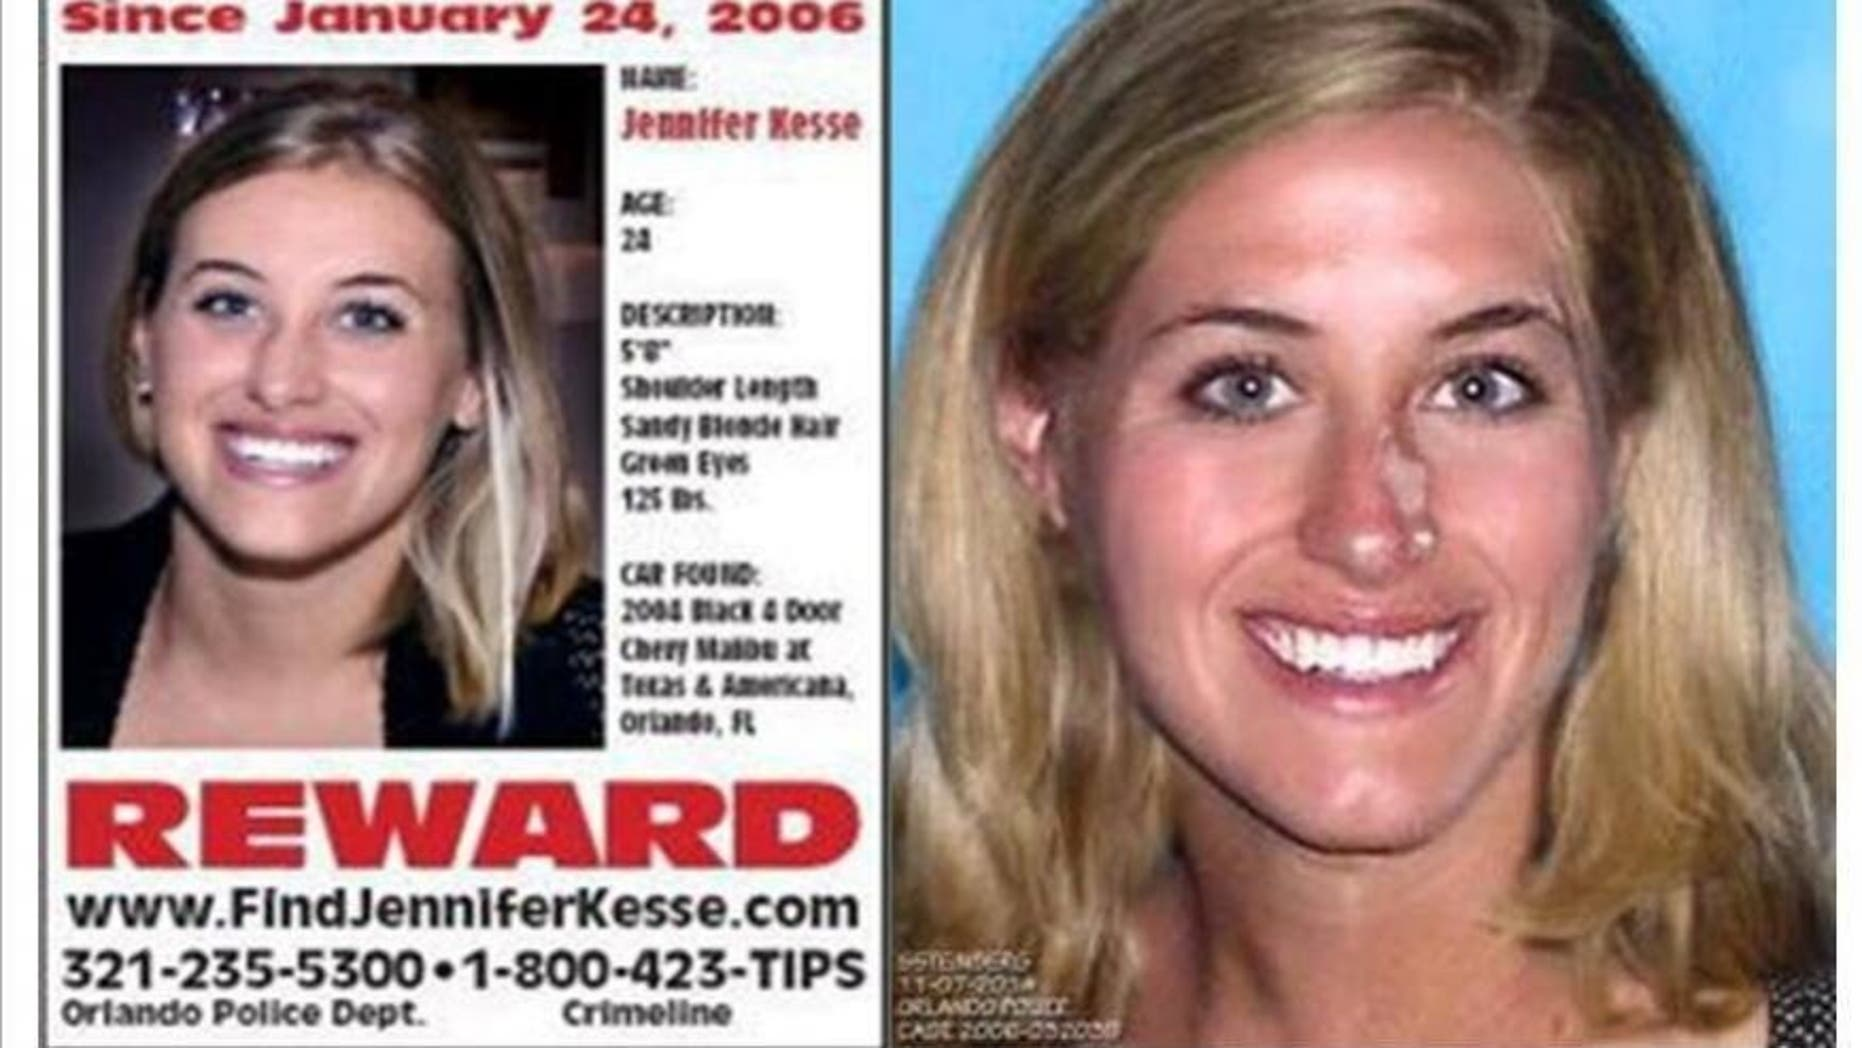 Jennifer Kesse is pictured on the left at age 24. Investigators age-progressed her image in 2016, pictured right, to show what she would look like 10 years later.